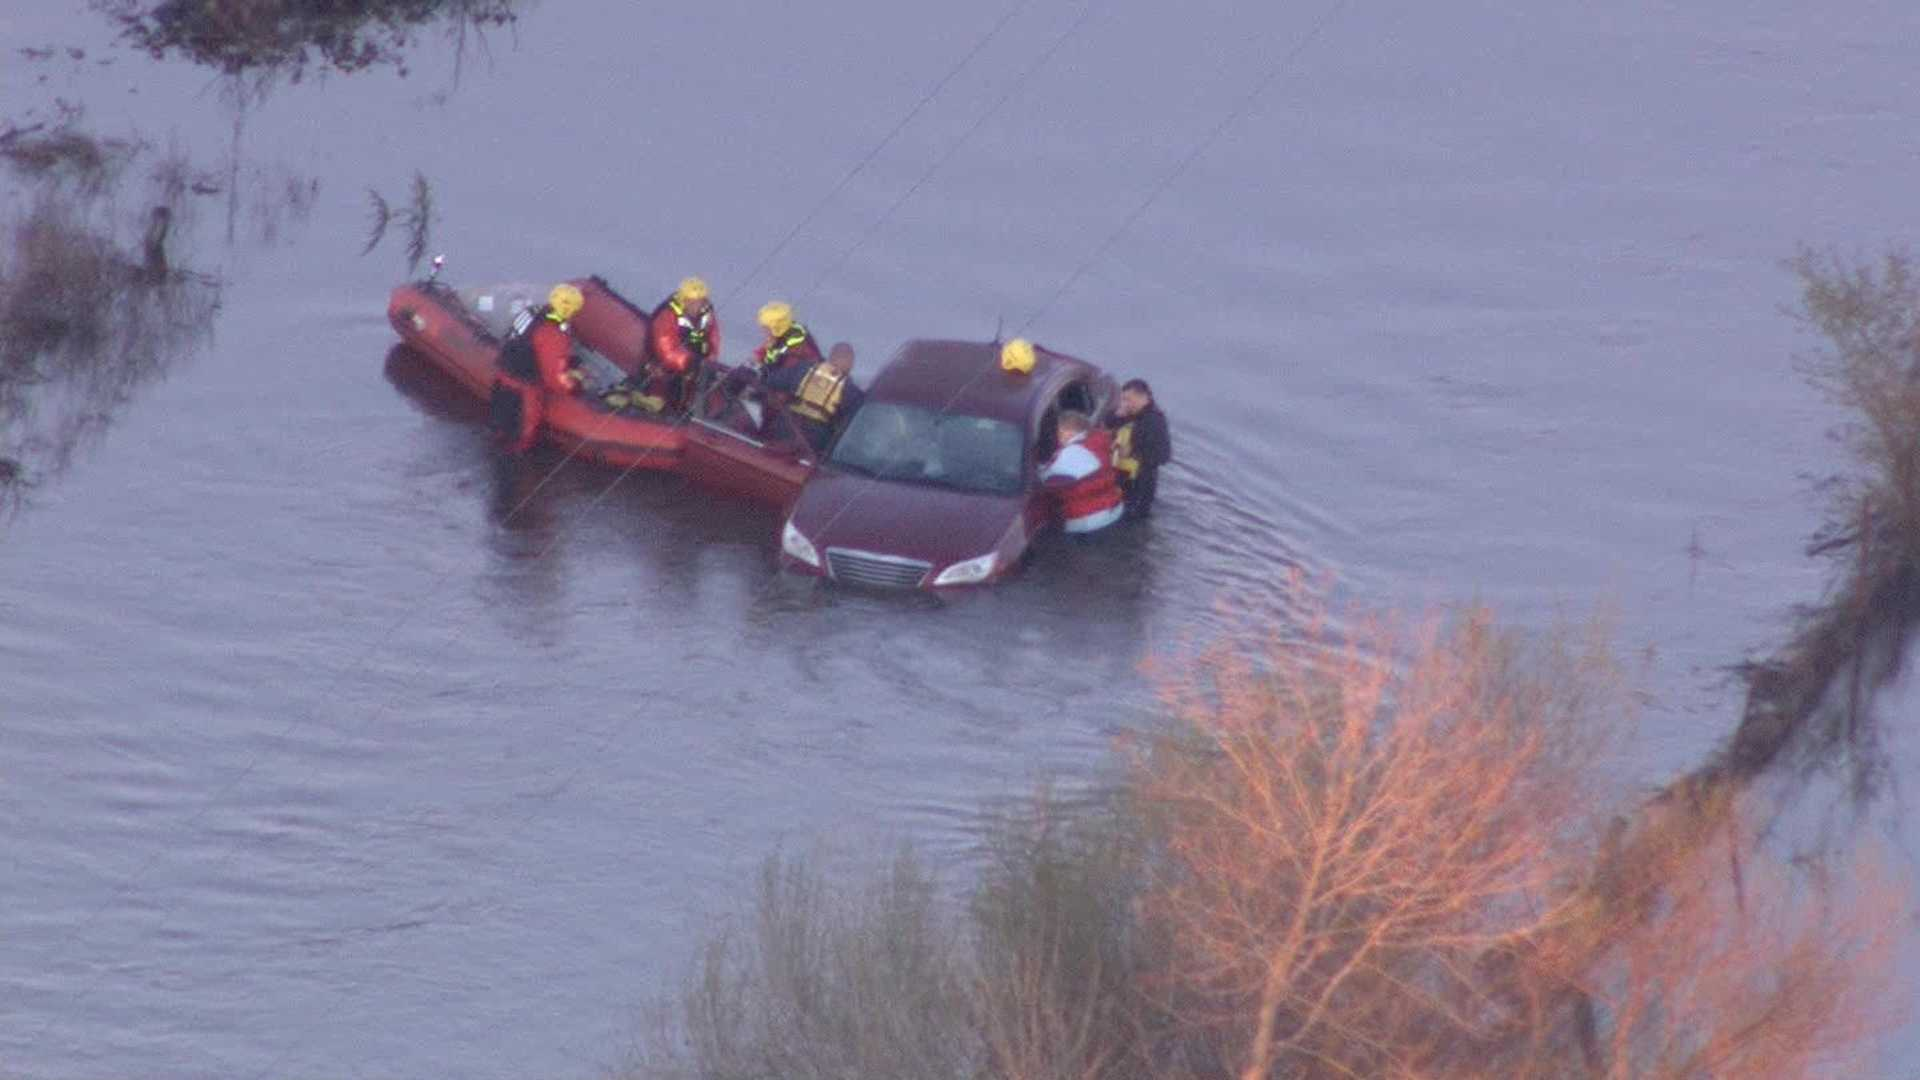 Crews rescue three people trapped in a car submerged in a flooded street on Monday, March 7, 2016.